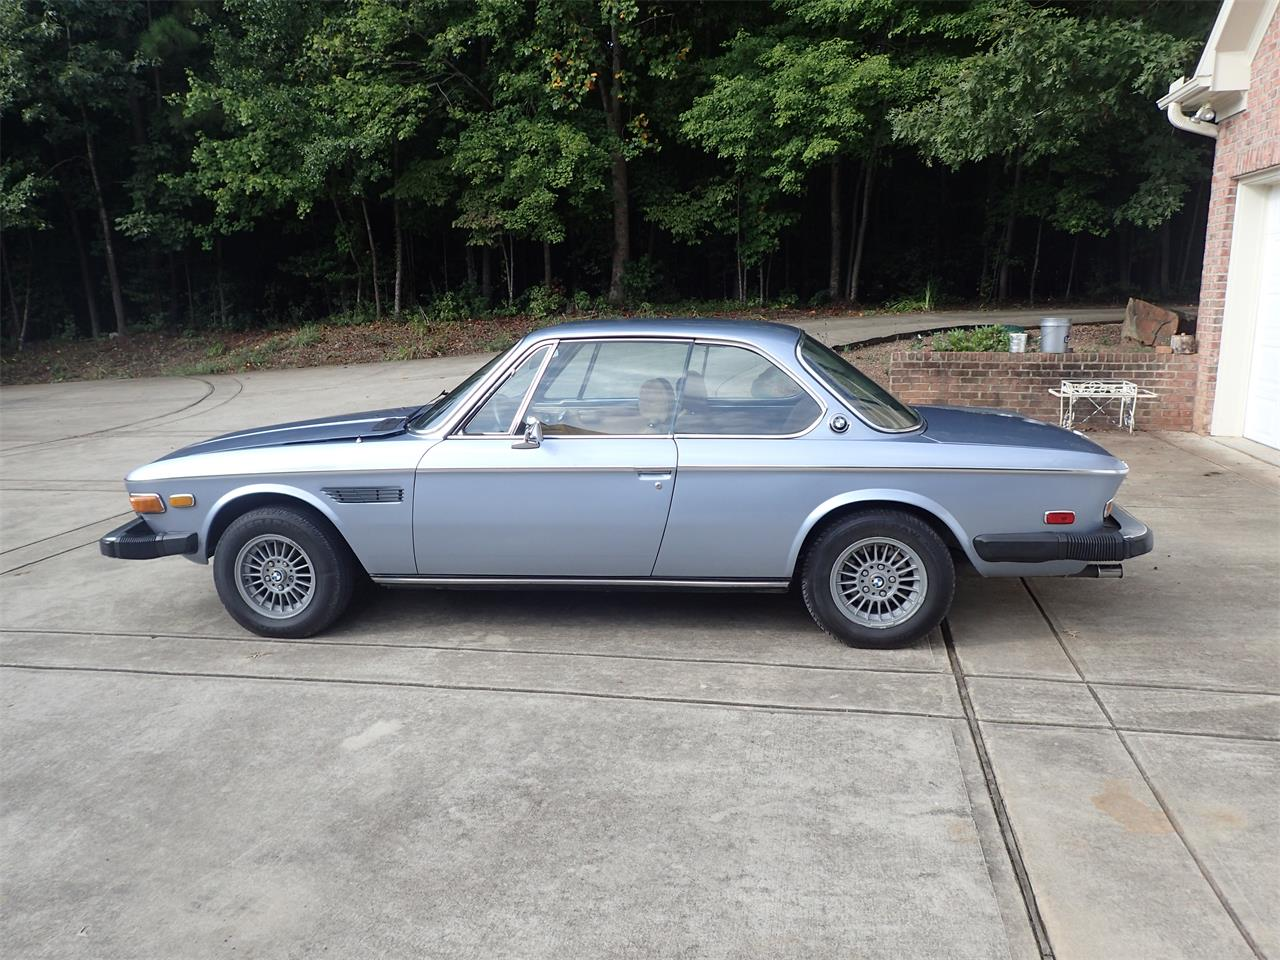 for sale 1974 bmw 3.0cs in pittsboro, north carolina cars - pittsboro, nc at geebo